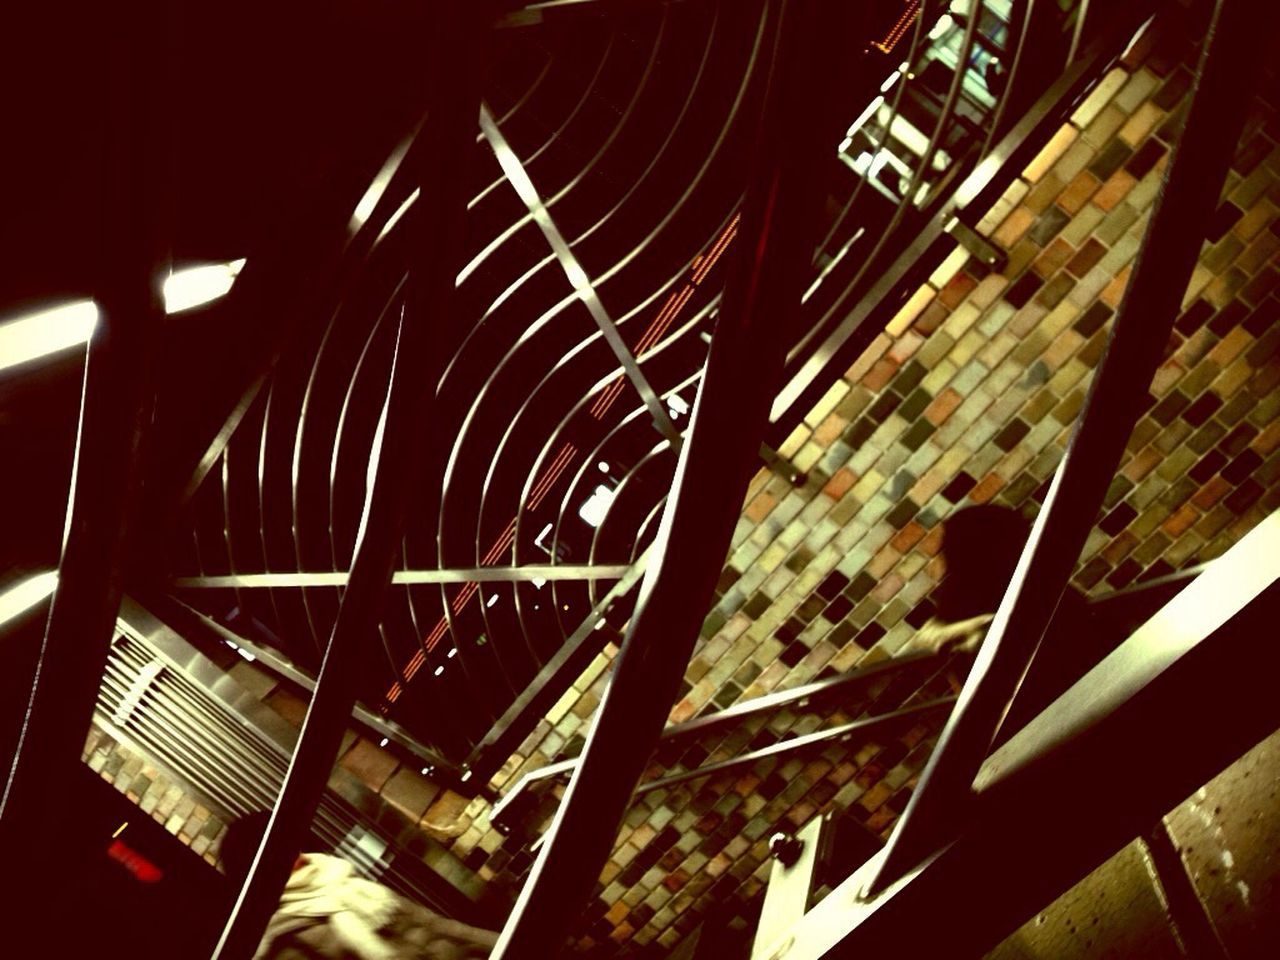 no people, built structure, indoors, architecture, illuminated, amusement park ride, low angle view, close-up, spiral staircase, day